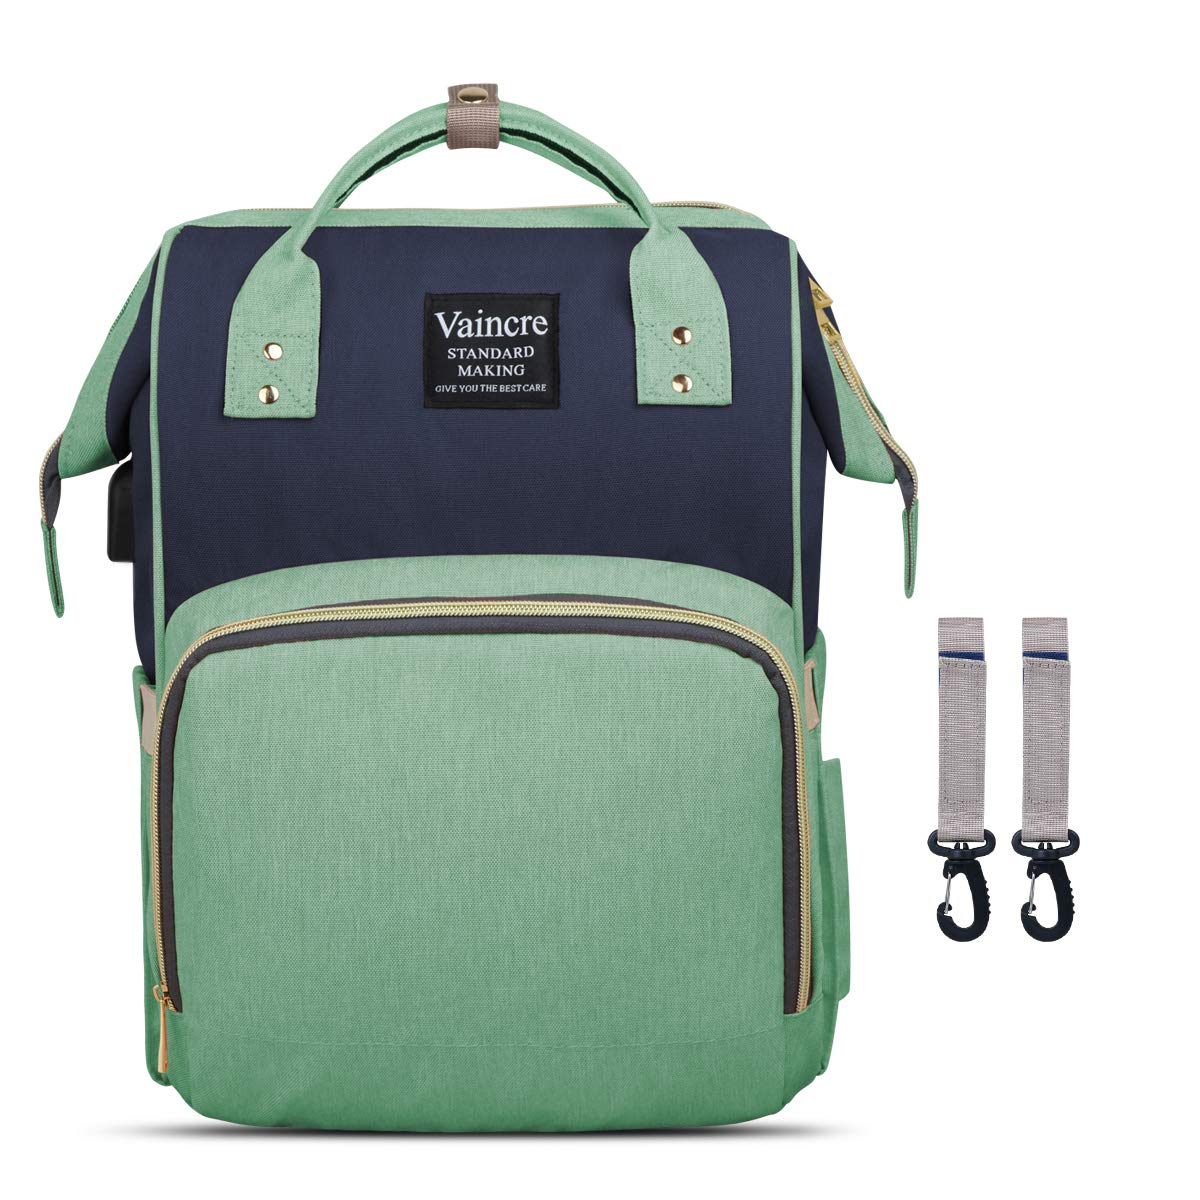 Vaincre Diaper Bag Multi-Function Color Block Waterproof Backpack Nappy Bags for Travel with Baby, Large Capacity, Stylish and Durable, Green